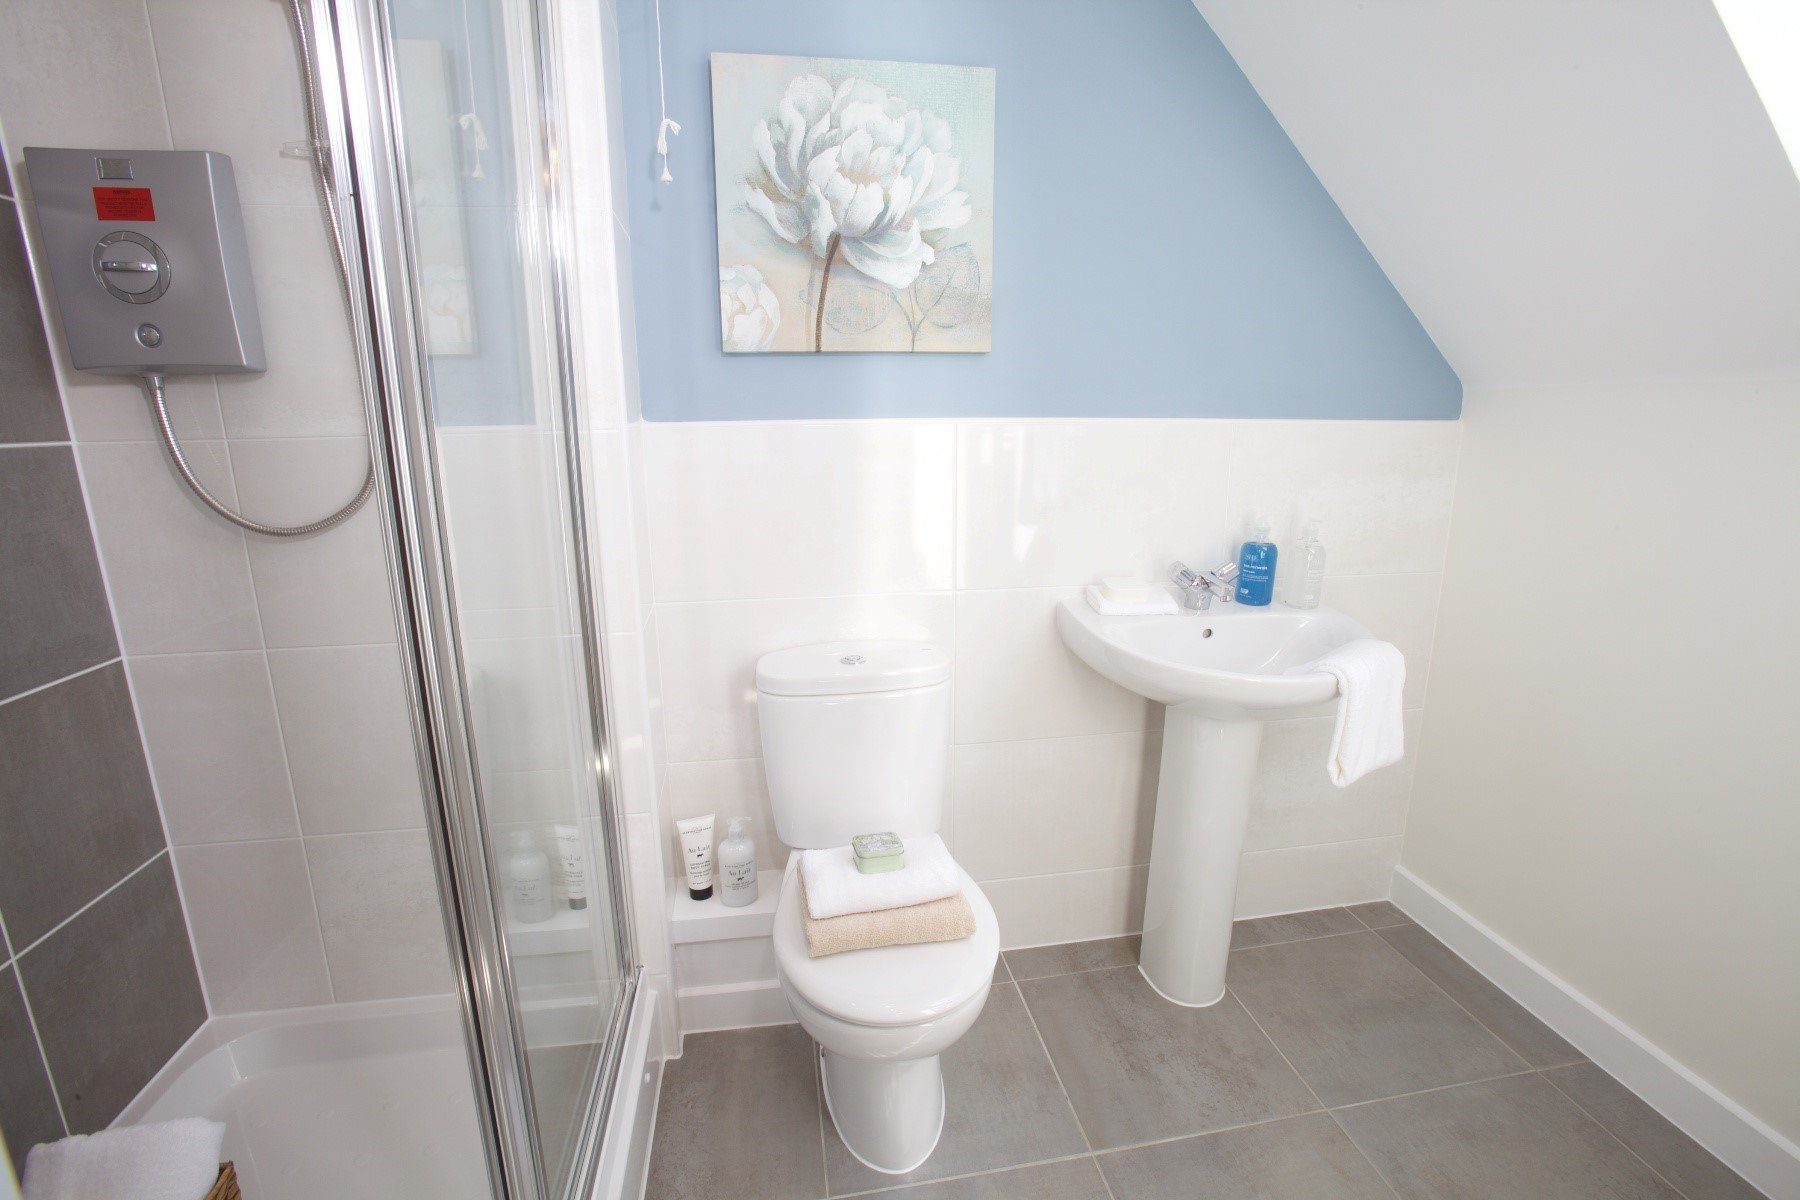 Kings Down showhome Crofton - En Suite